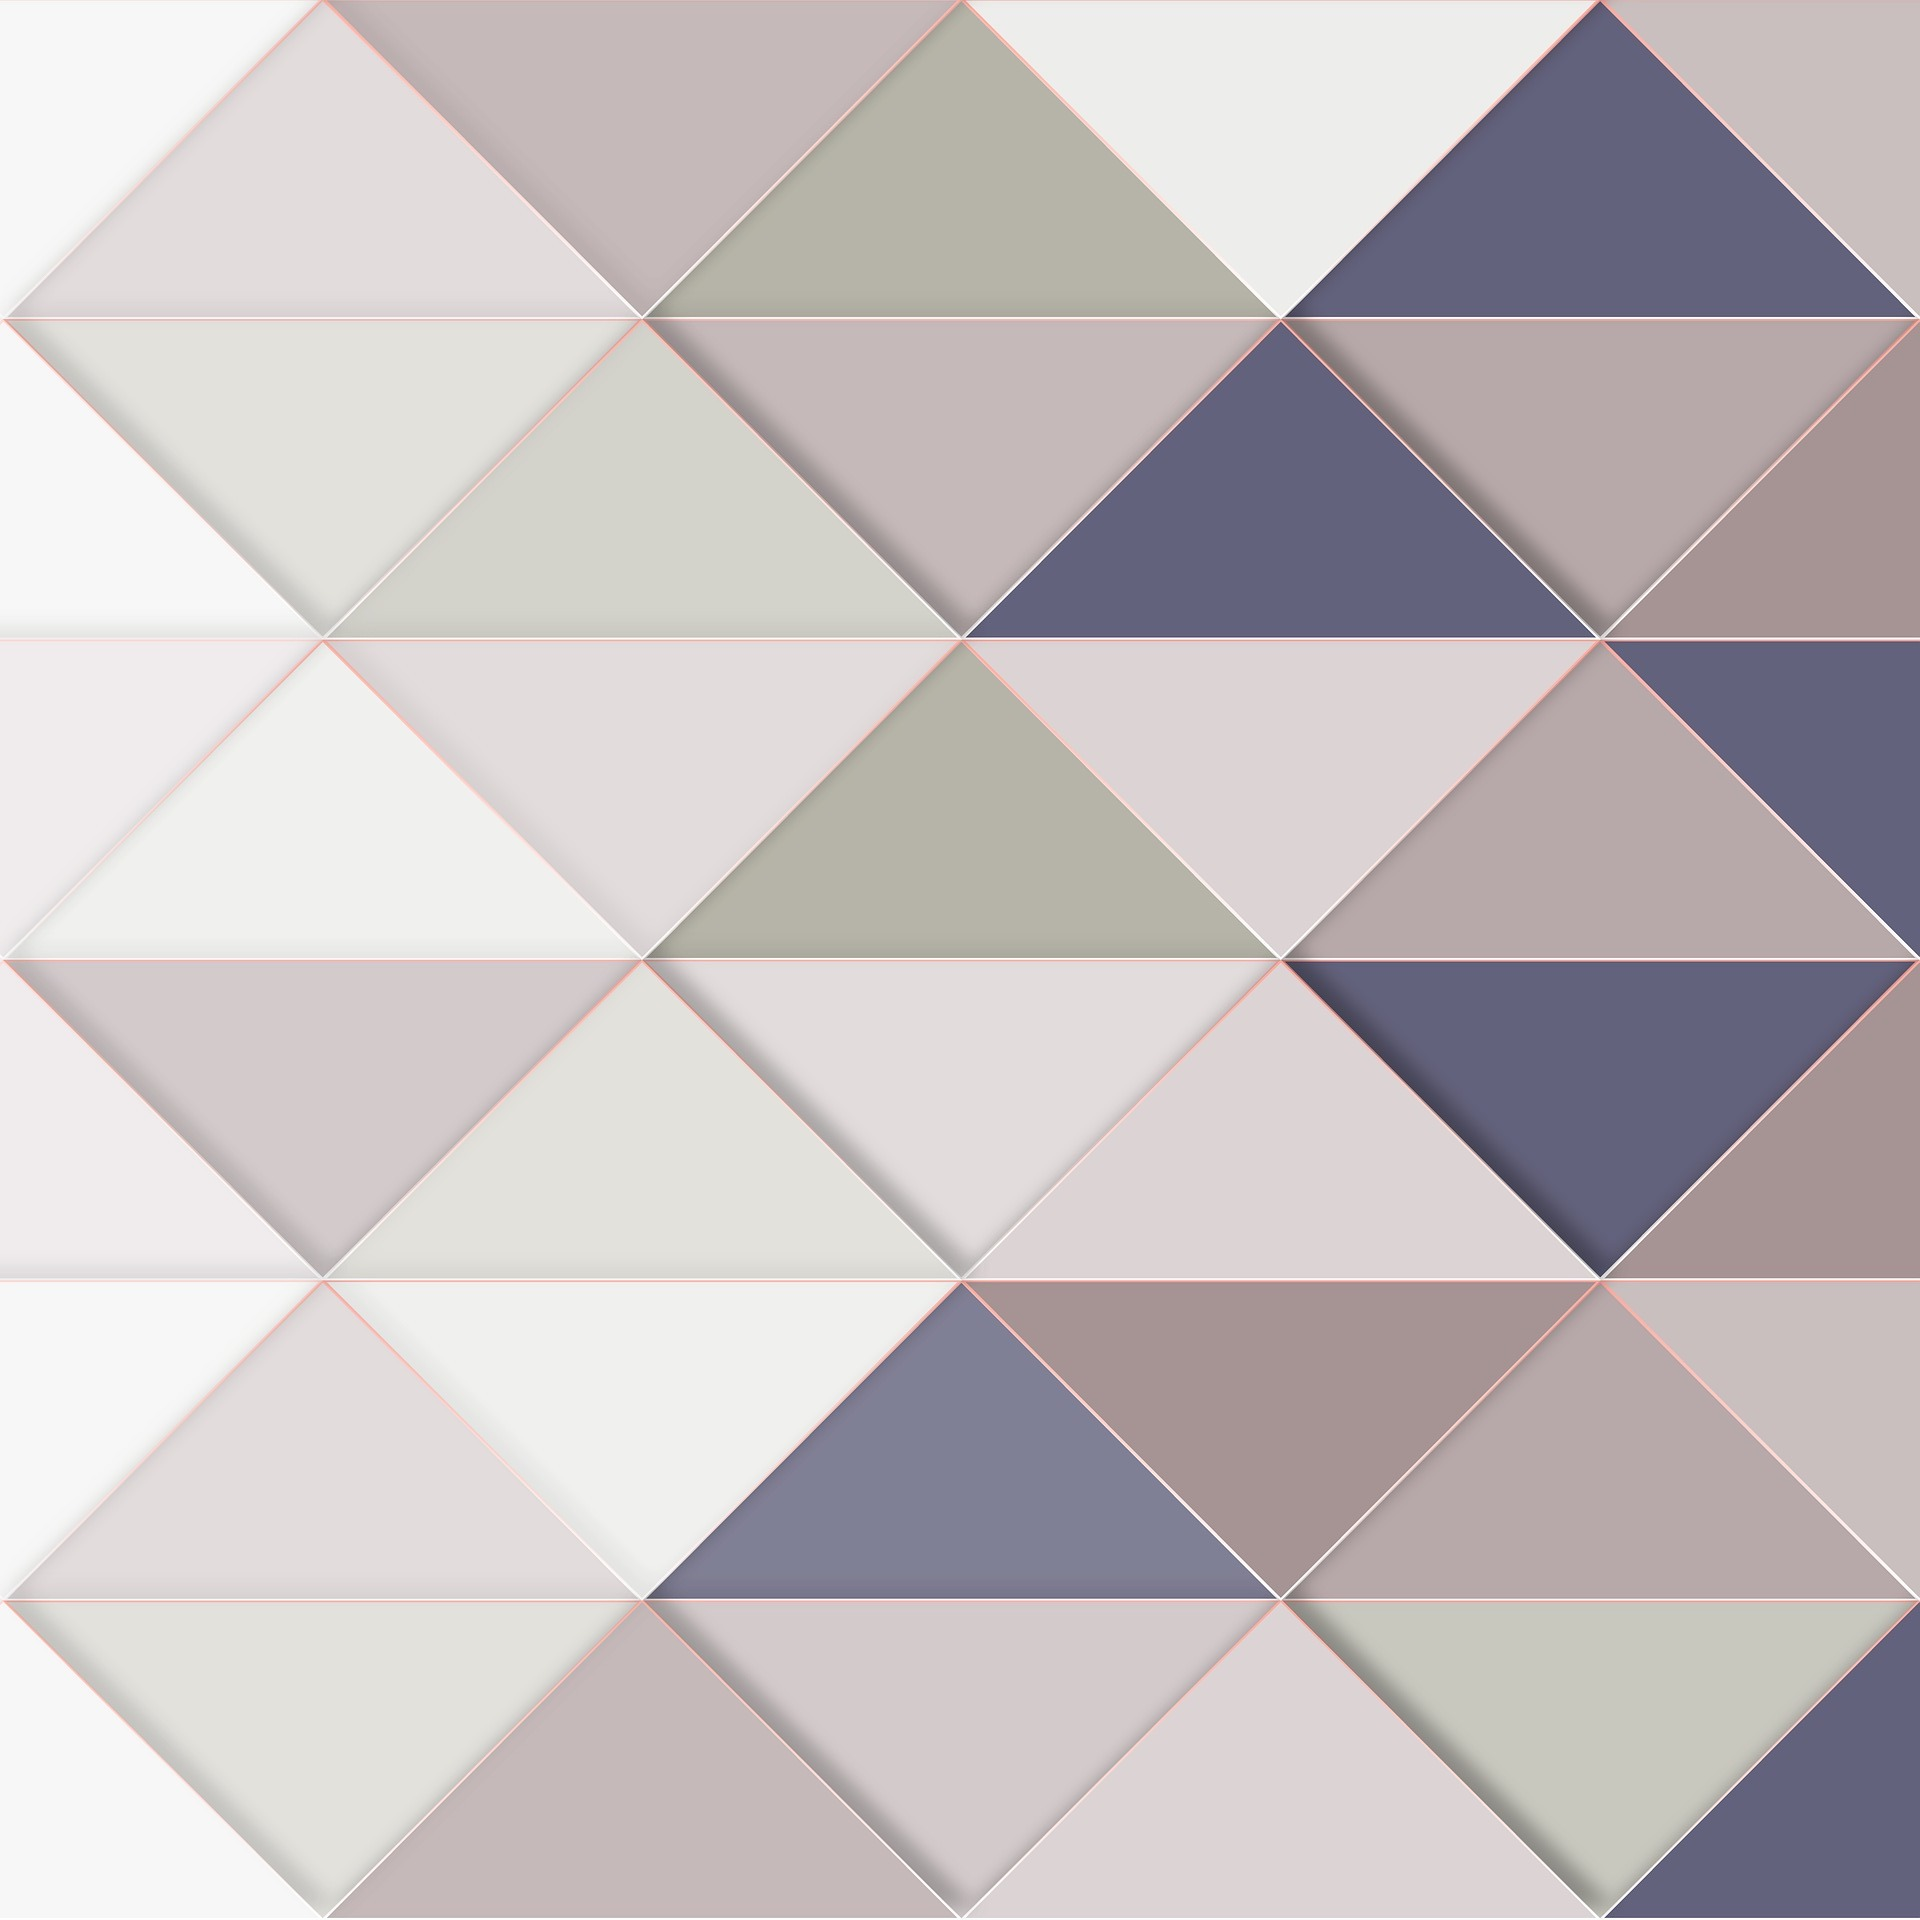 Triangular vibrant wall designs that are sure to lift and make over your walls at home.